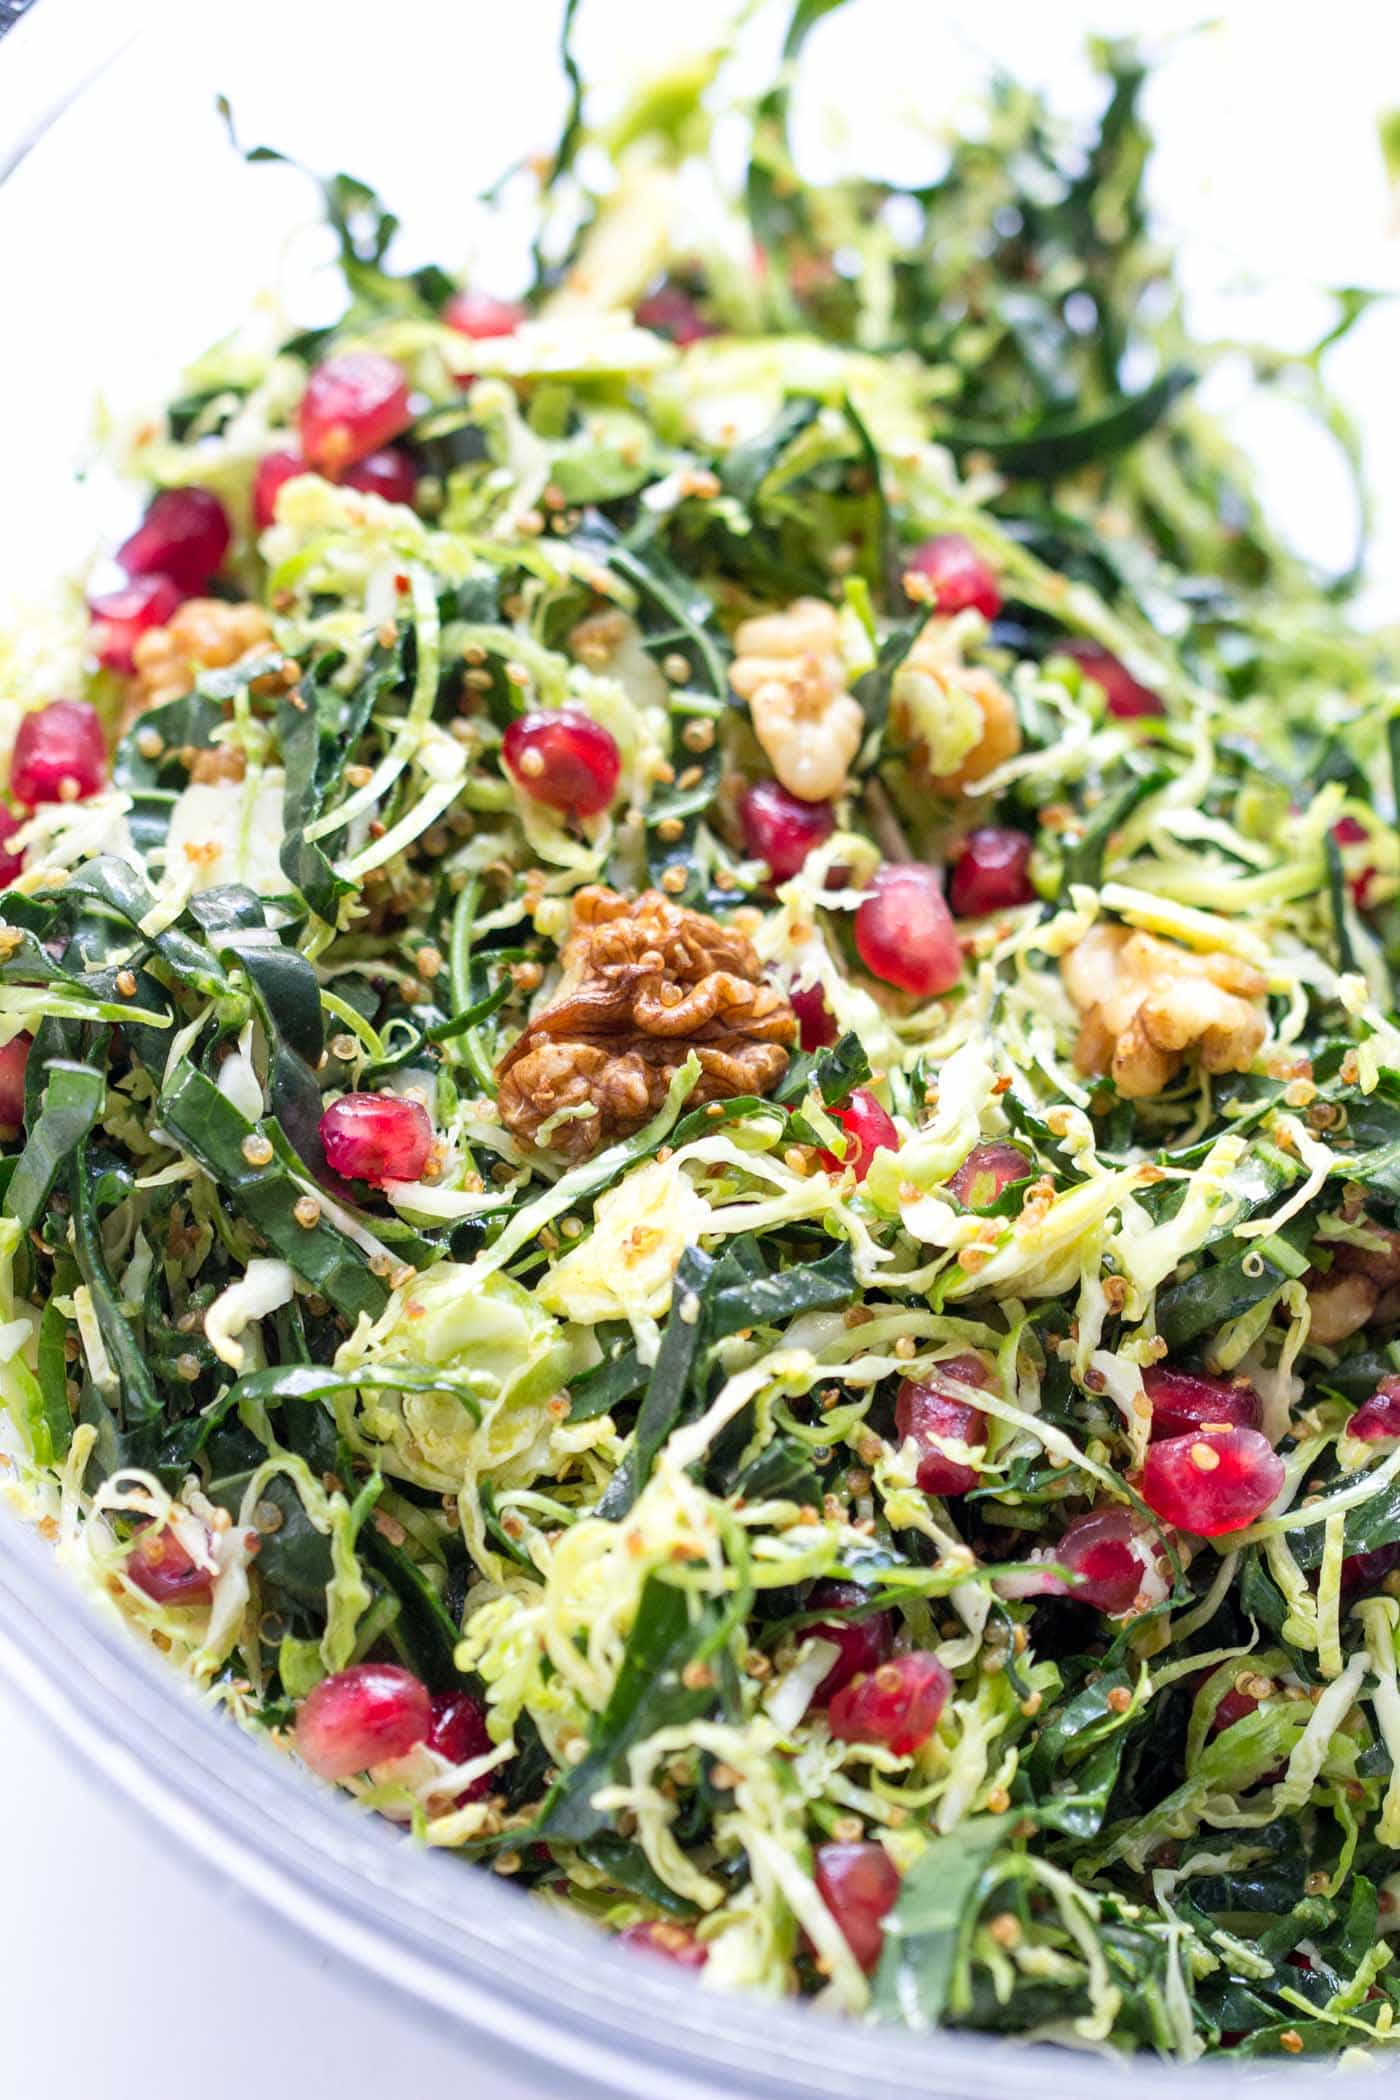 A healthy holiday salad with shredded brussels sprouts, kale, quinoa, walnuts and pomegranates -- it looks so festive and delicious!